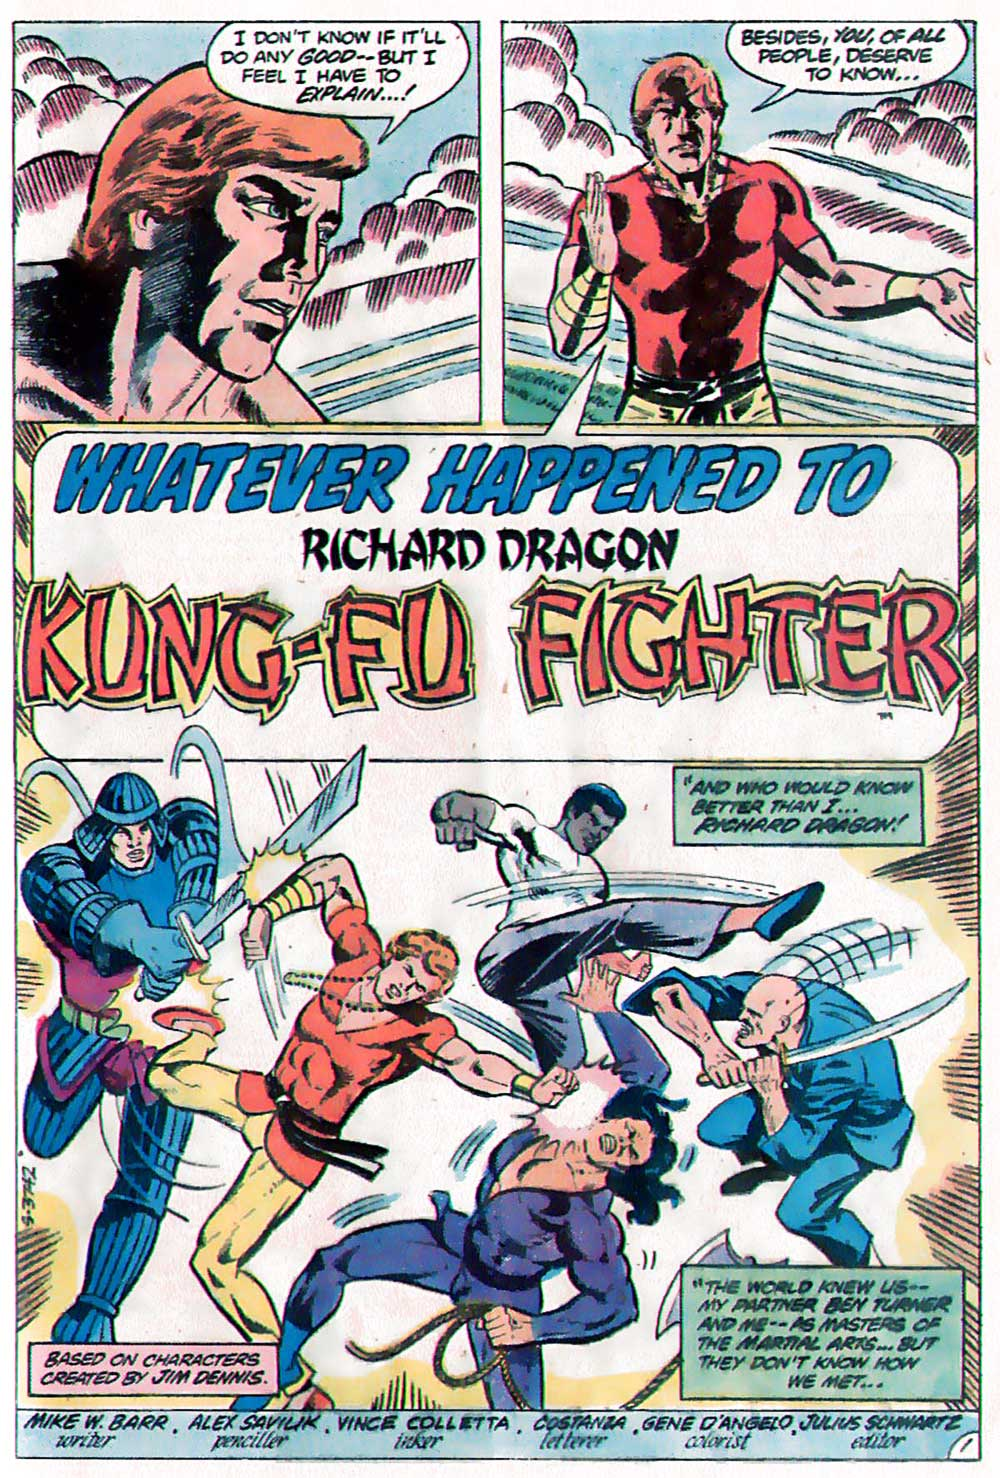 Whatever Happened To... Richard Dragon, Kung Fu Fighter! From DC Comics Presents #39, by Mike W. Barr, Alex Saviuk, and Vince Colletta.